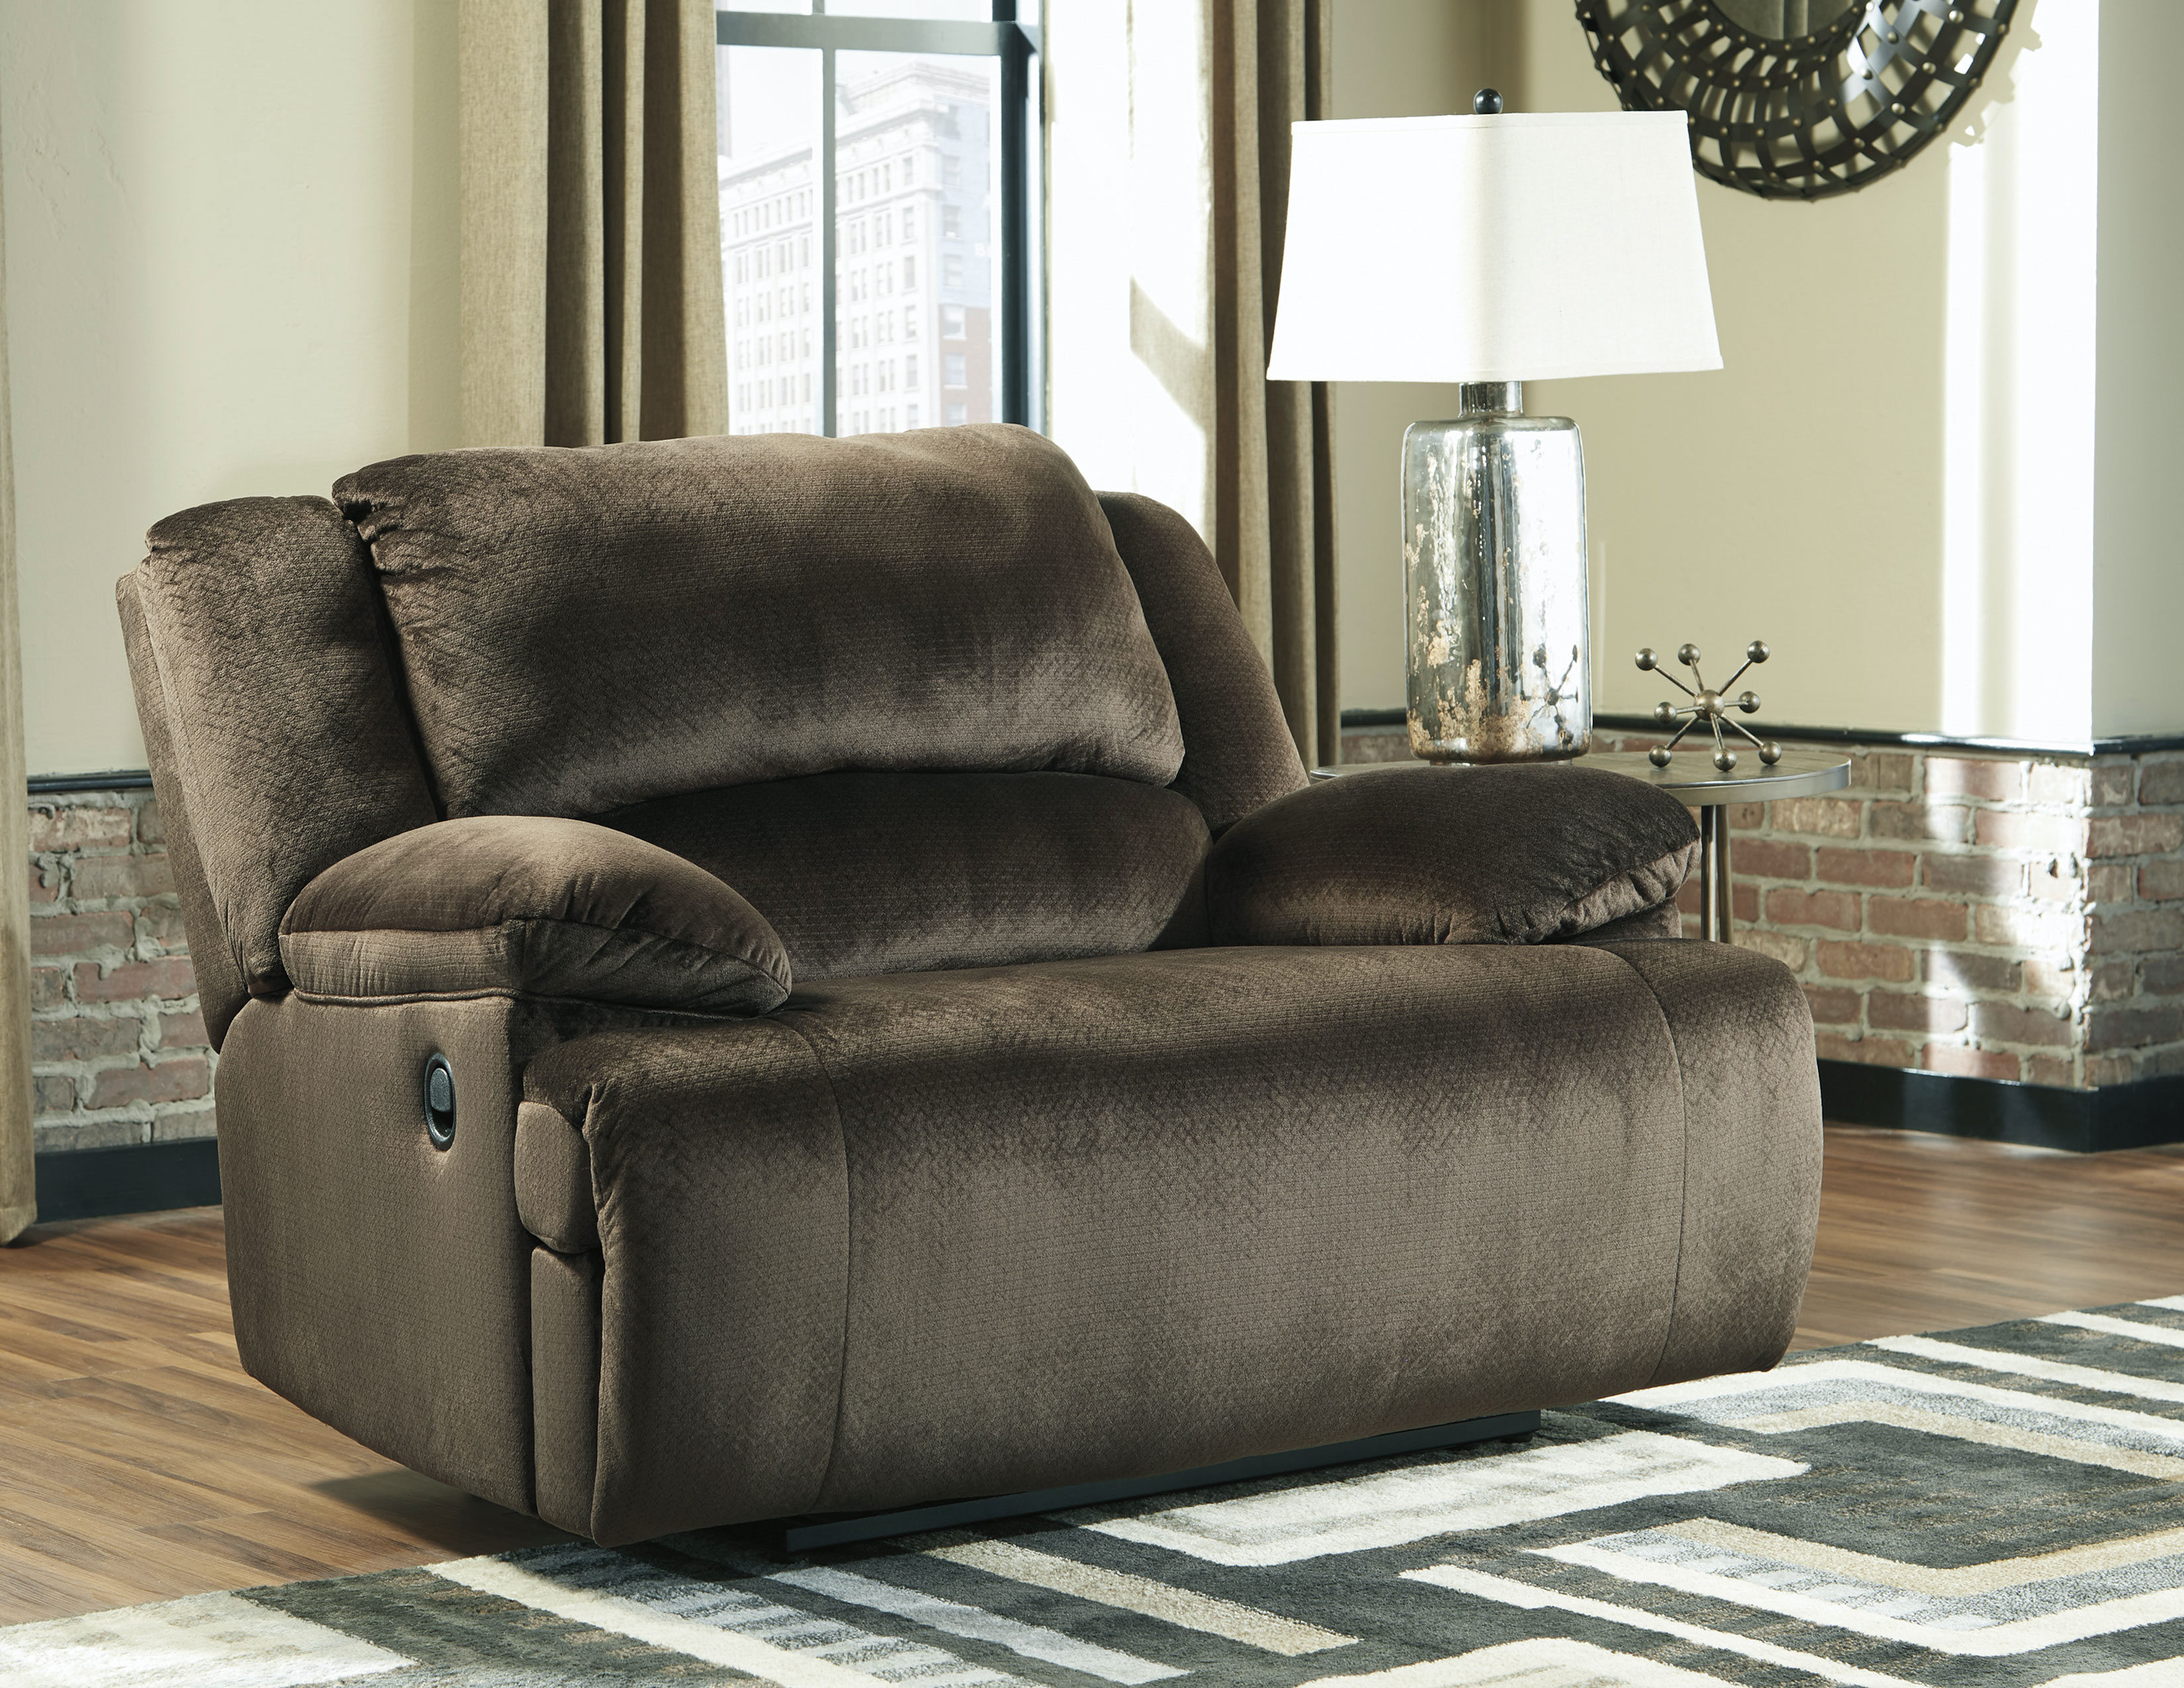 Clonmel Extra Wide Zero Wall Power Recliner In Sofas And Sectionals - Extra Wide Couch